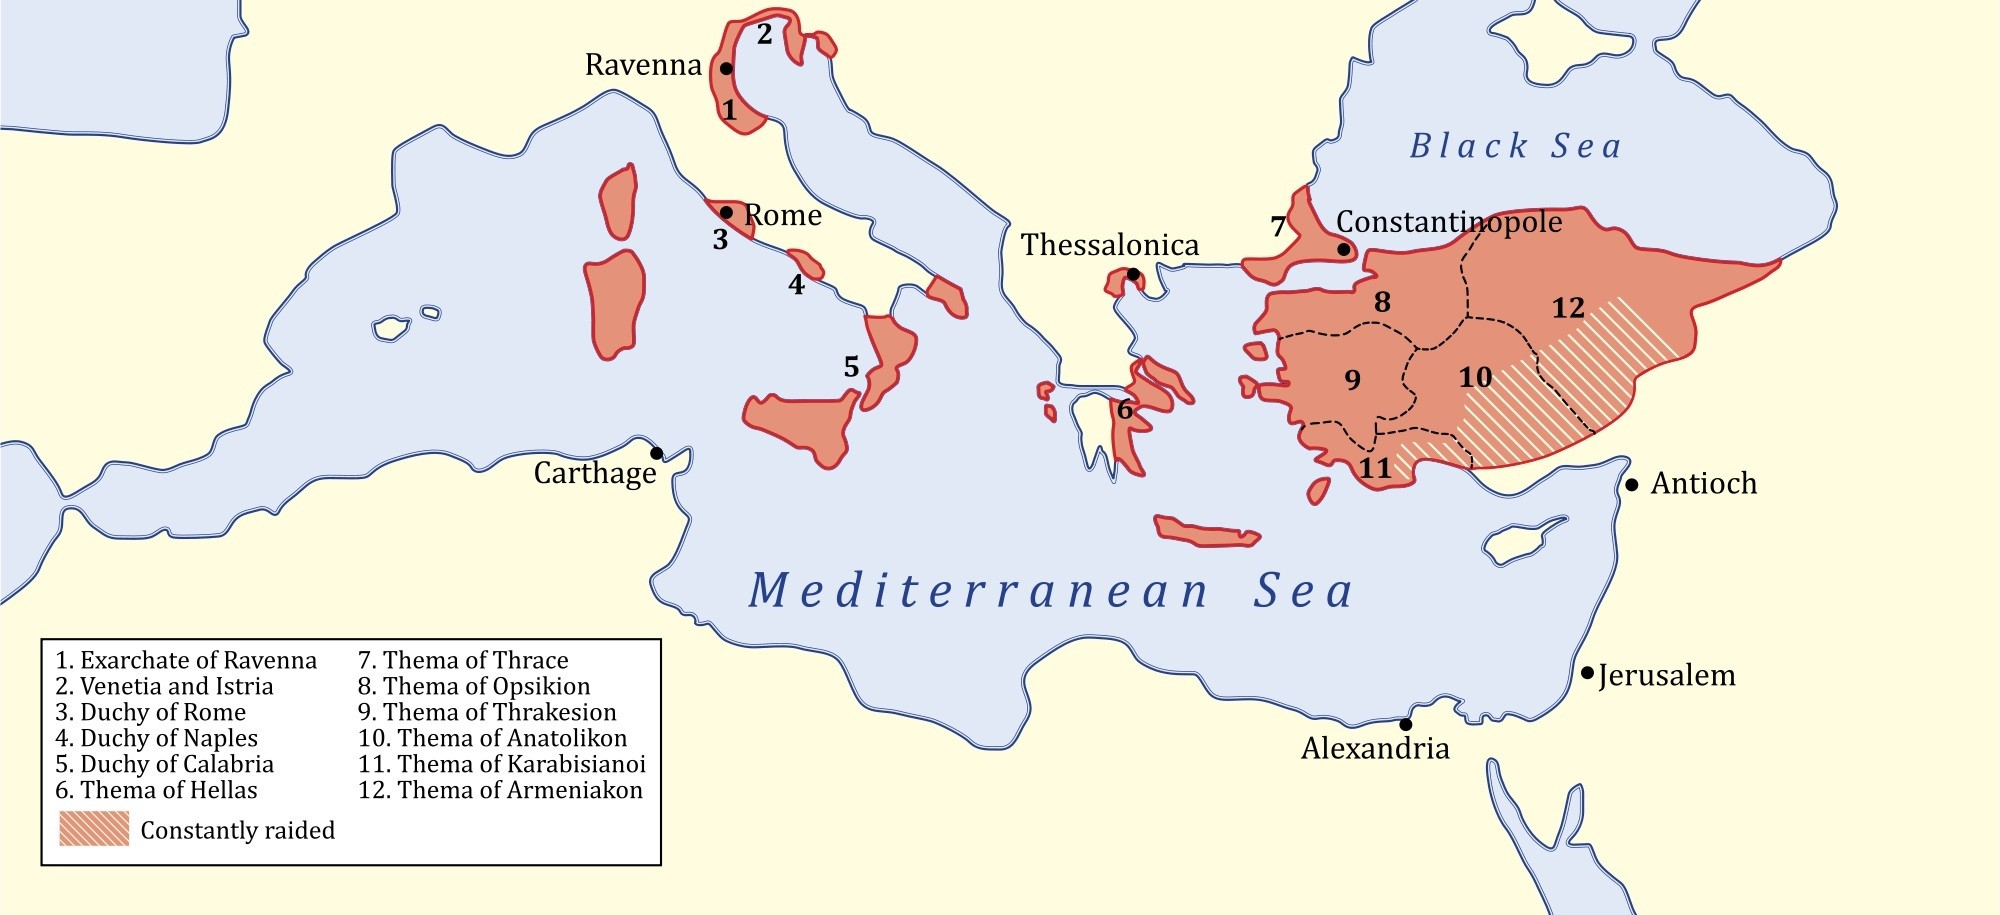 map-of-byzantine-empire-isaurian-dynasty